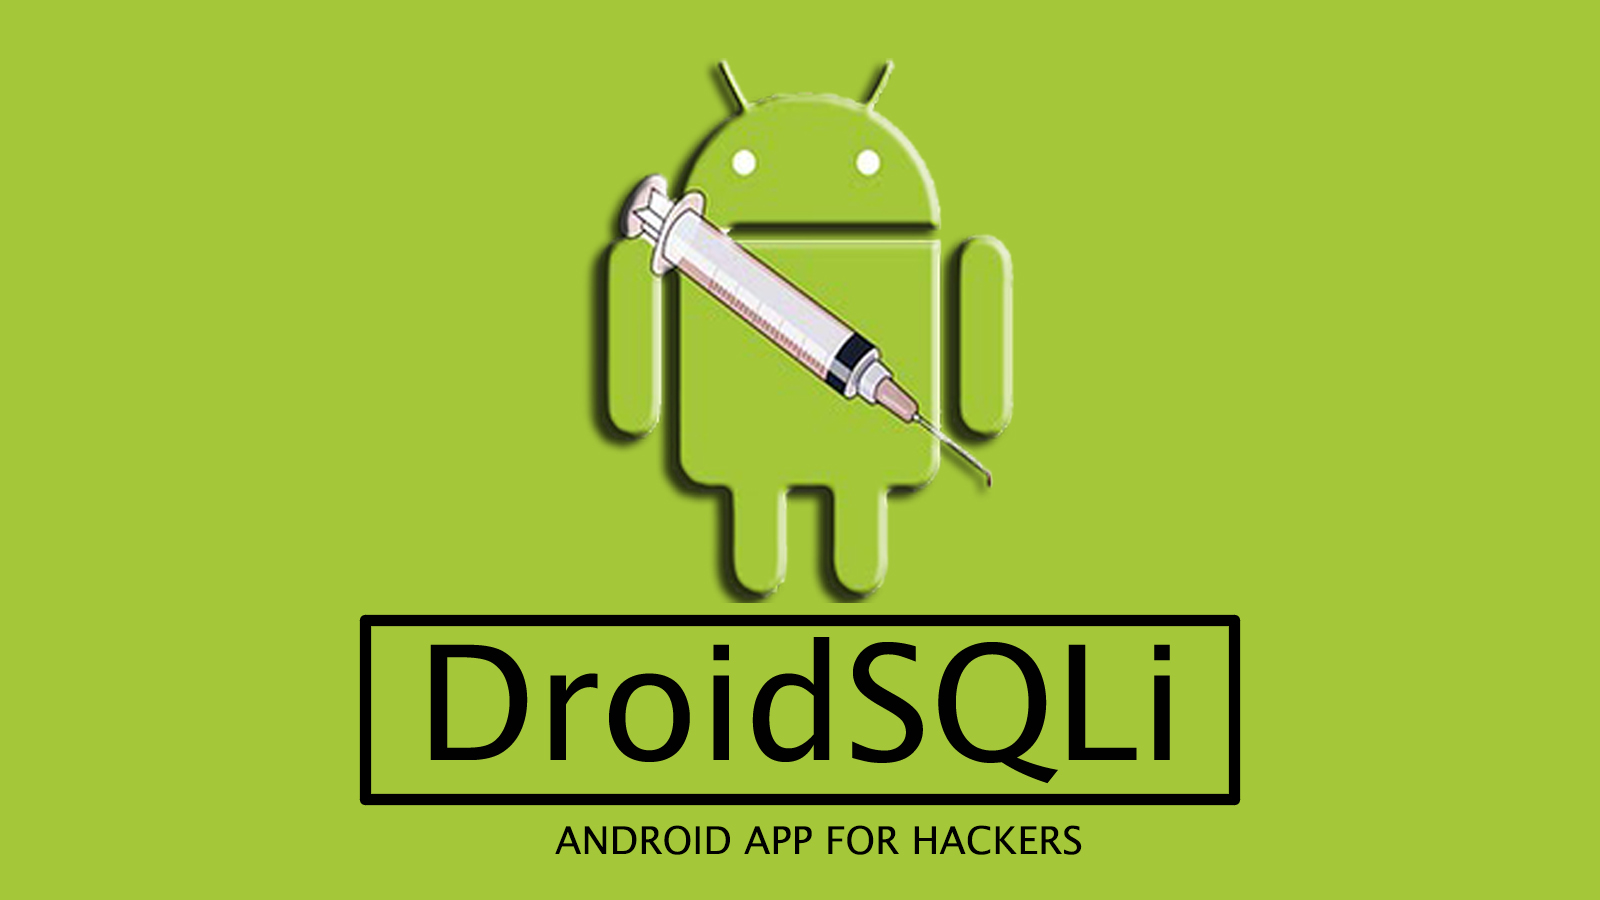 Free Download DroidSqli Android App | Hacking Tools